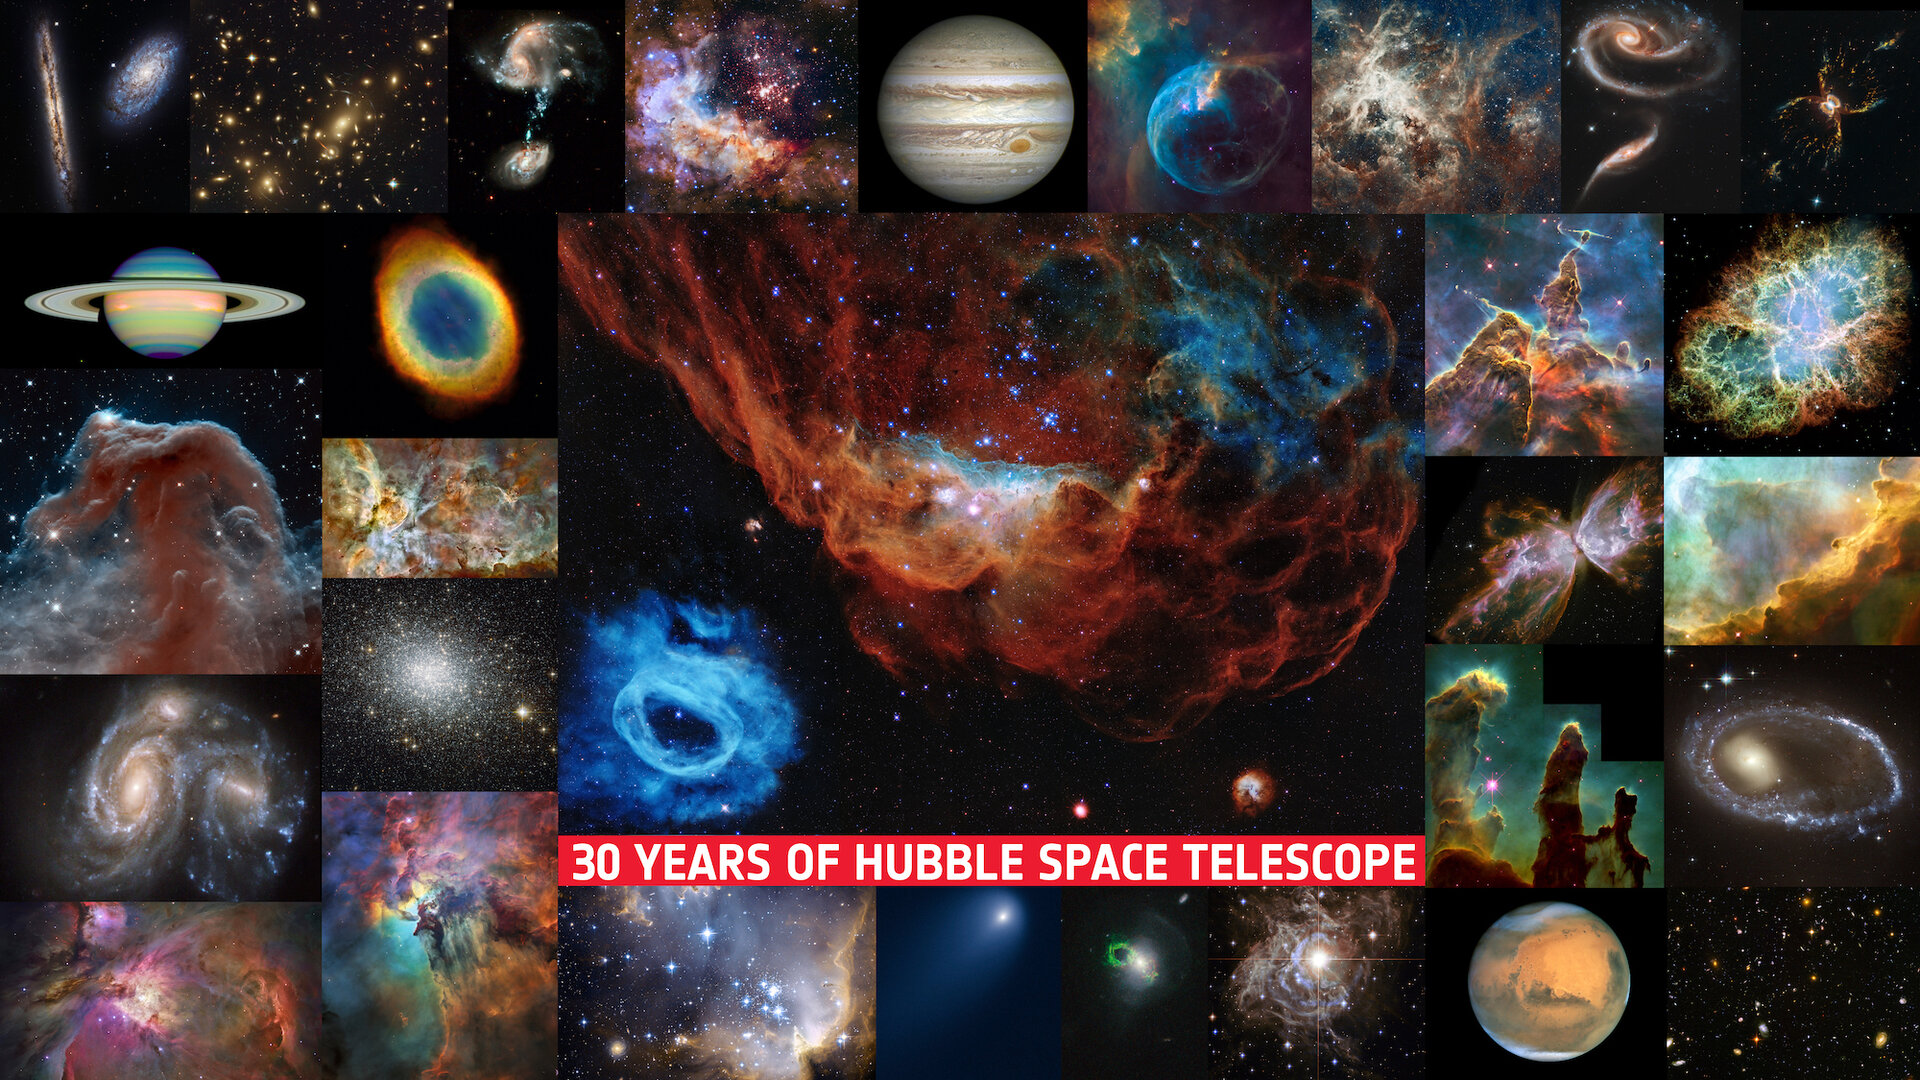 ESA - Thirty years of Hubble Space Telescope